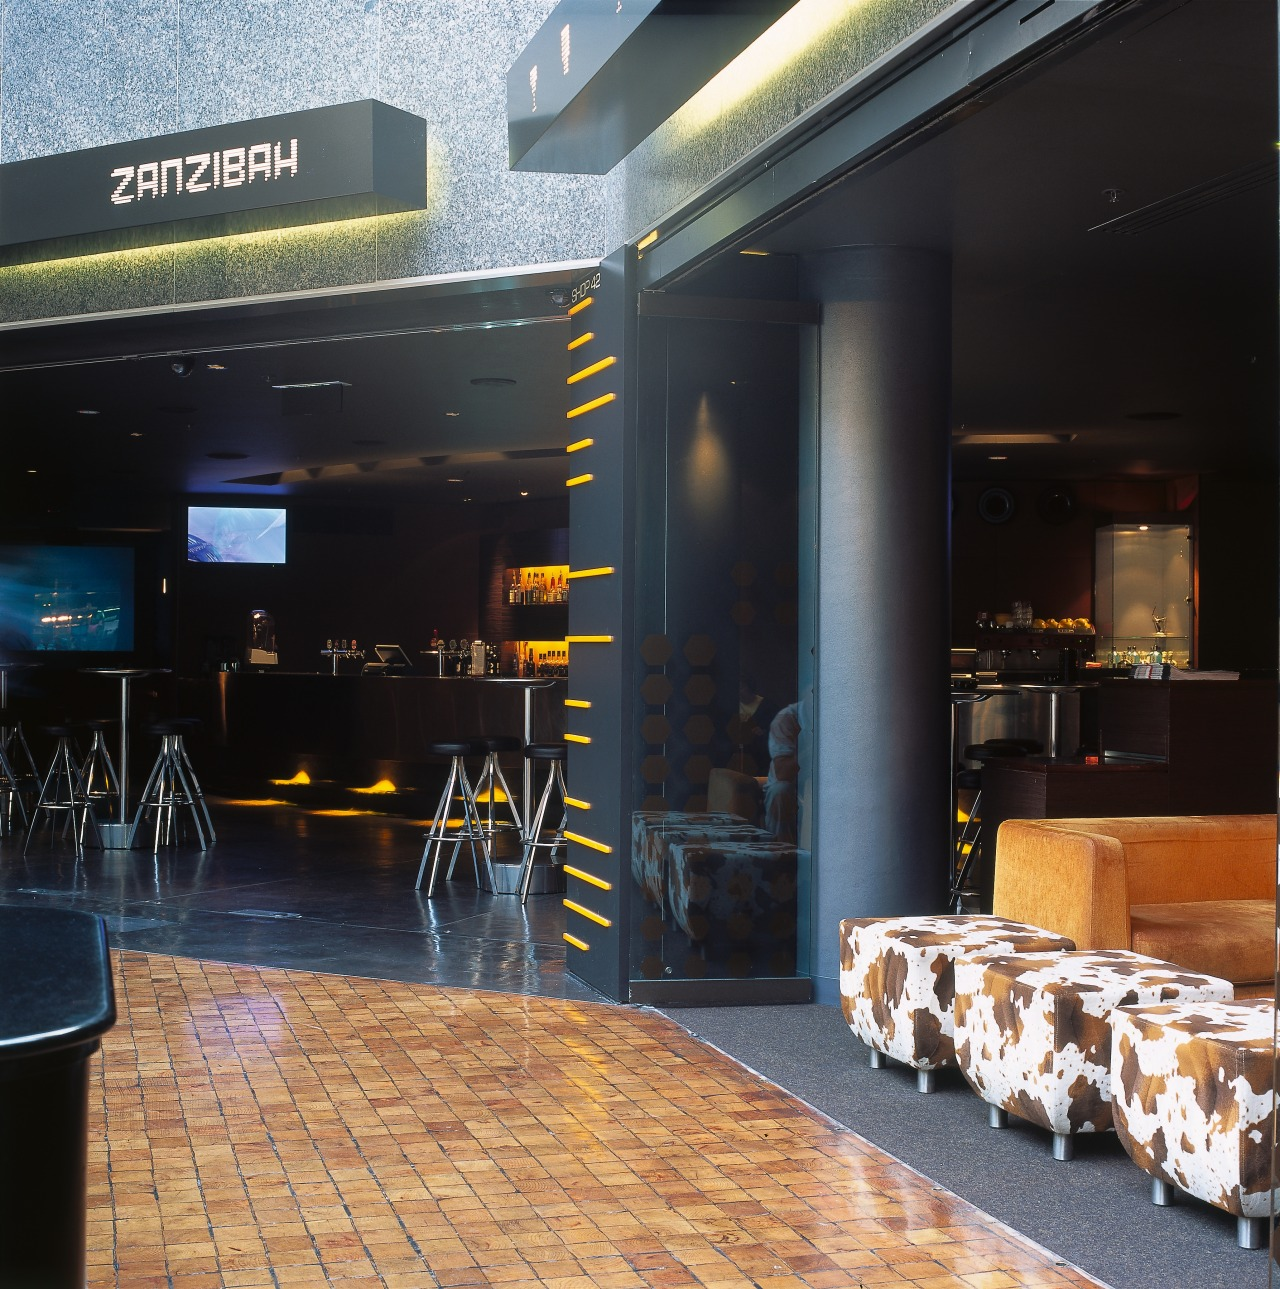 View of a shop and a cafe within interior design, black